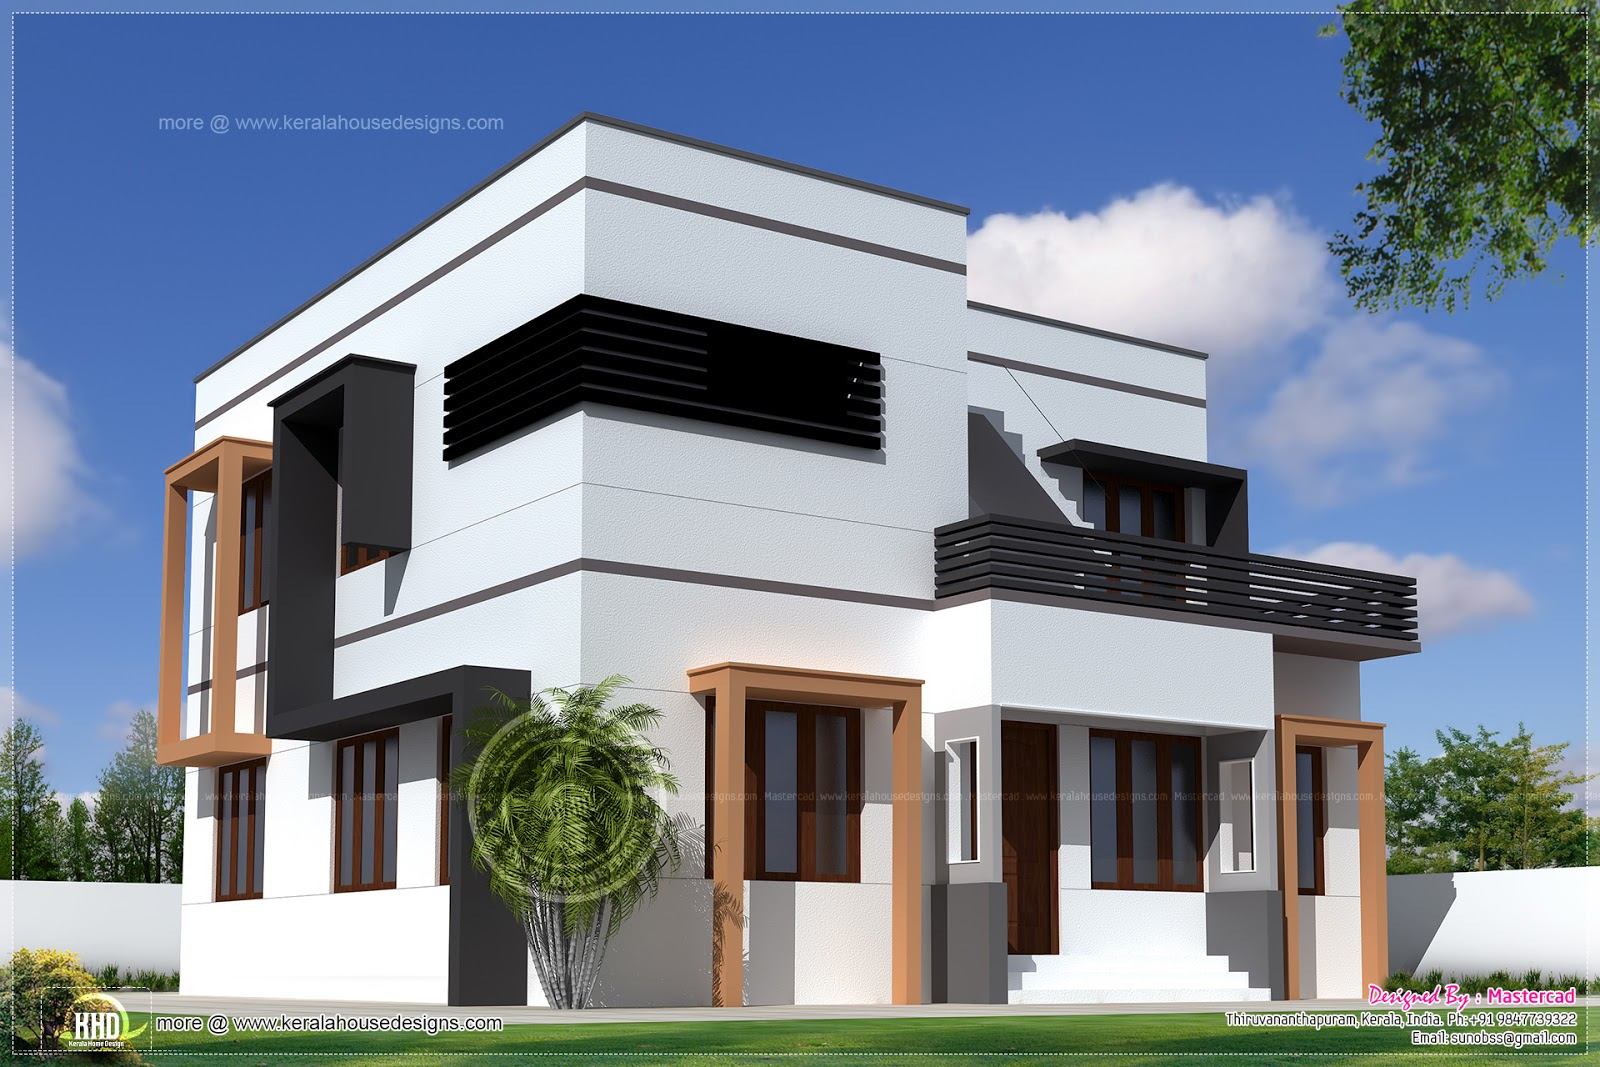 1627 Square Feet Modern Villa Exterior Kerala Home Design And Floor Plans